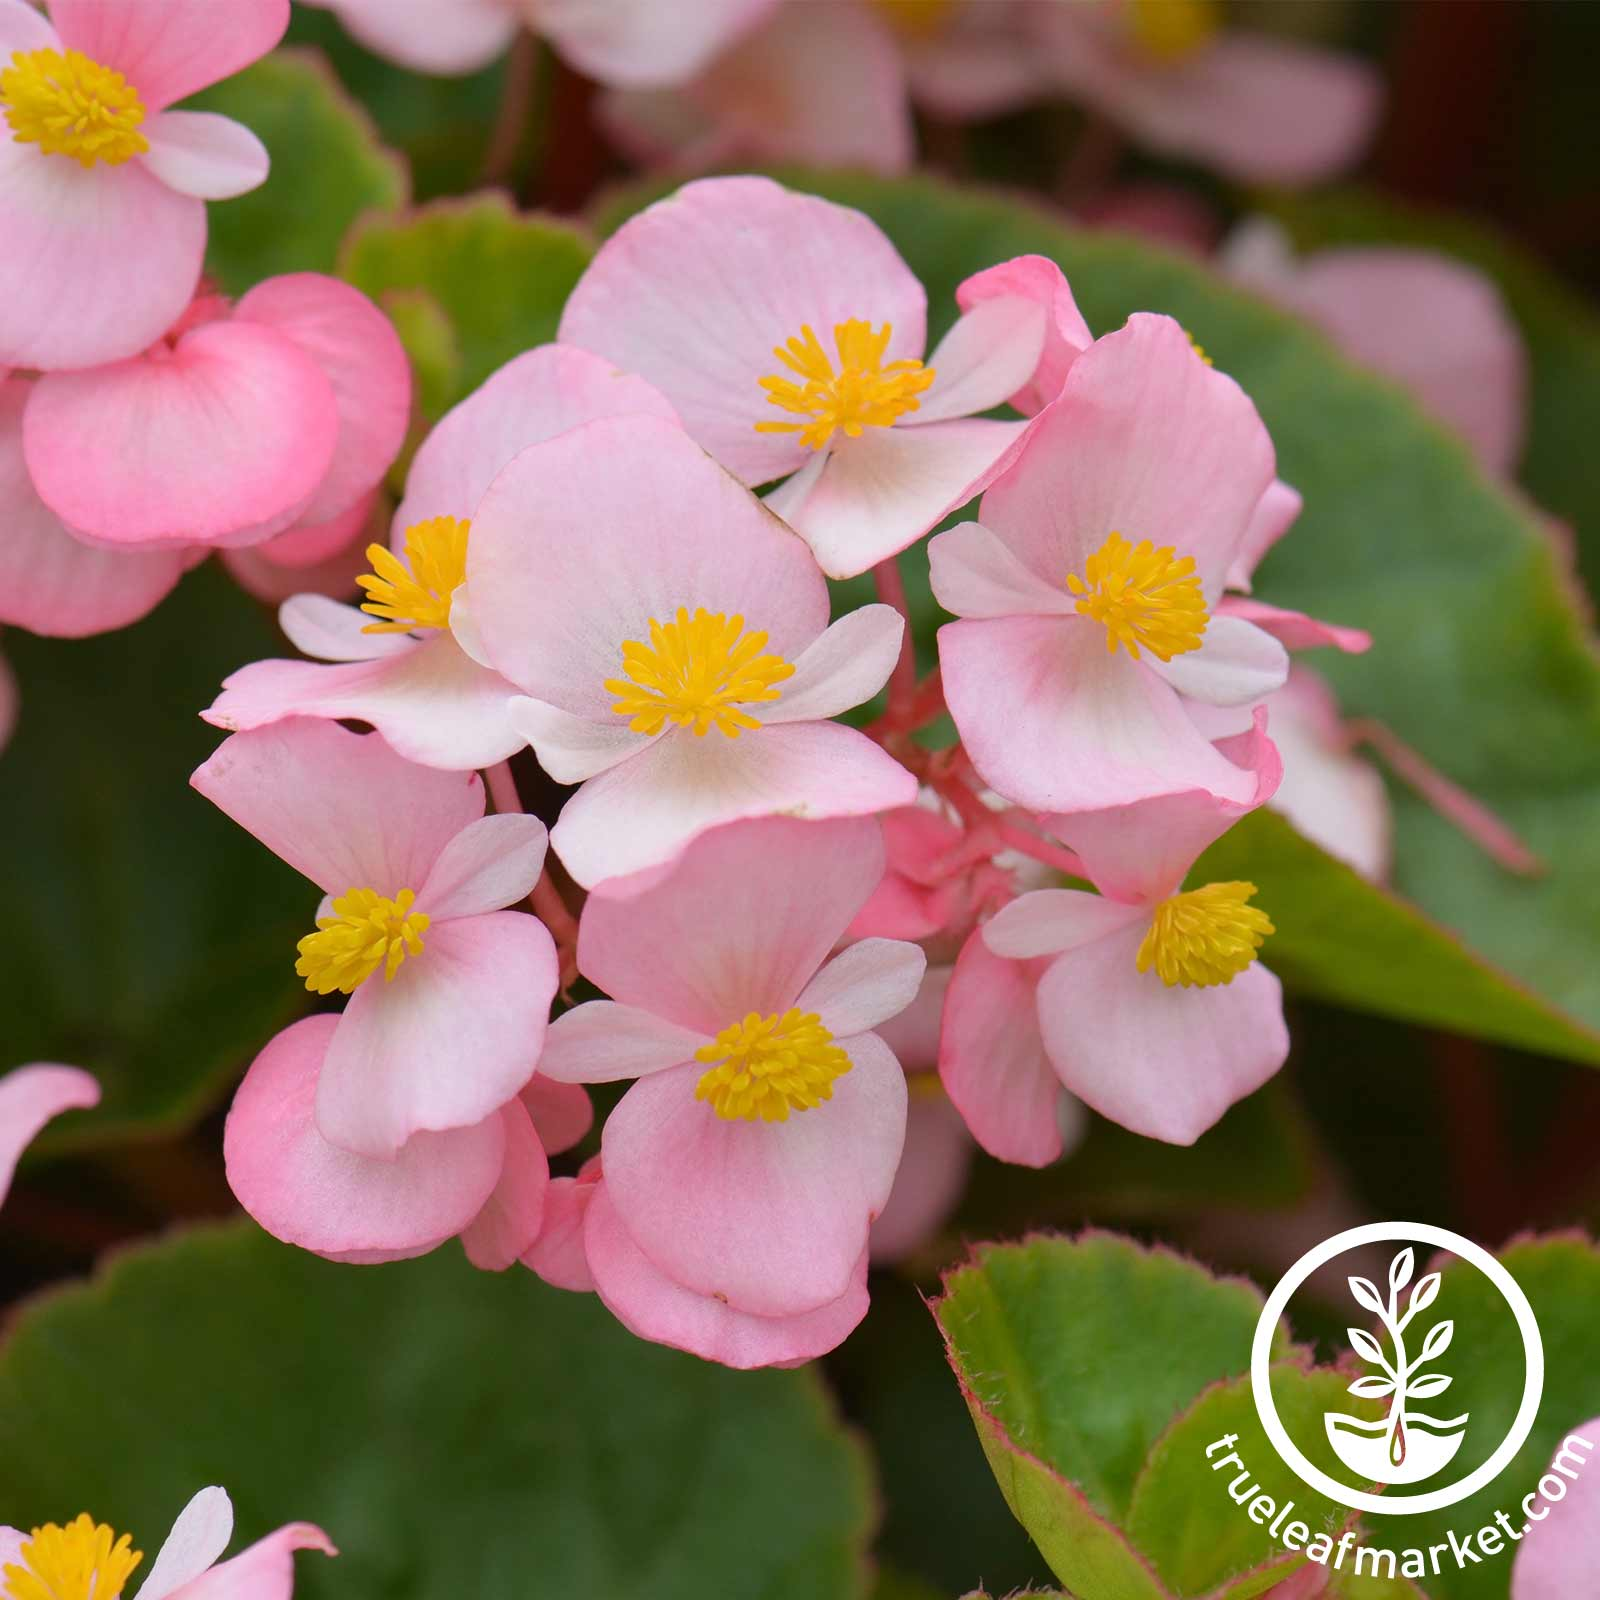 Begonia - Fibrous - Cocktail Series (pelleted) - Brandy (light pink)